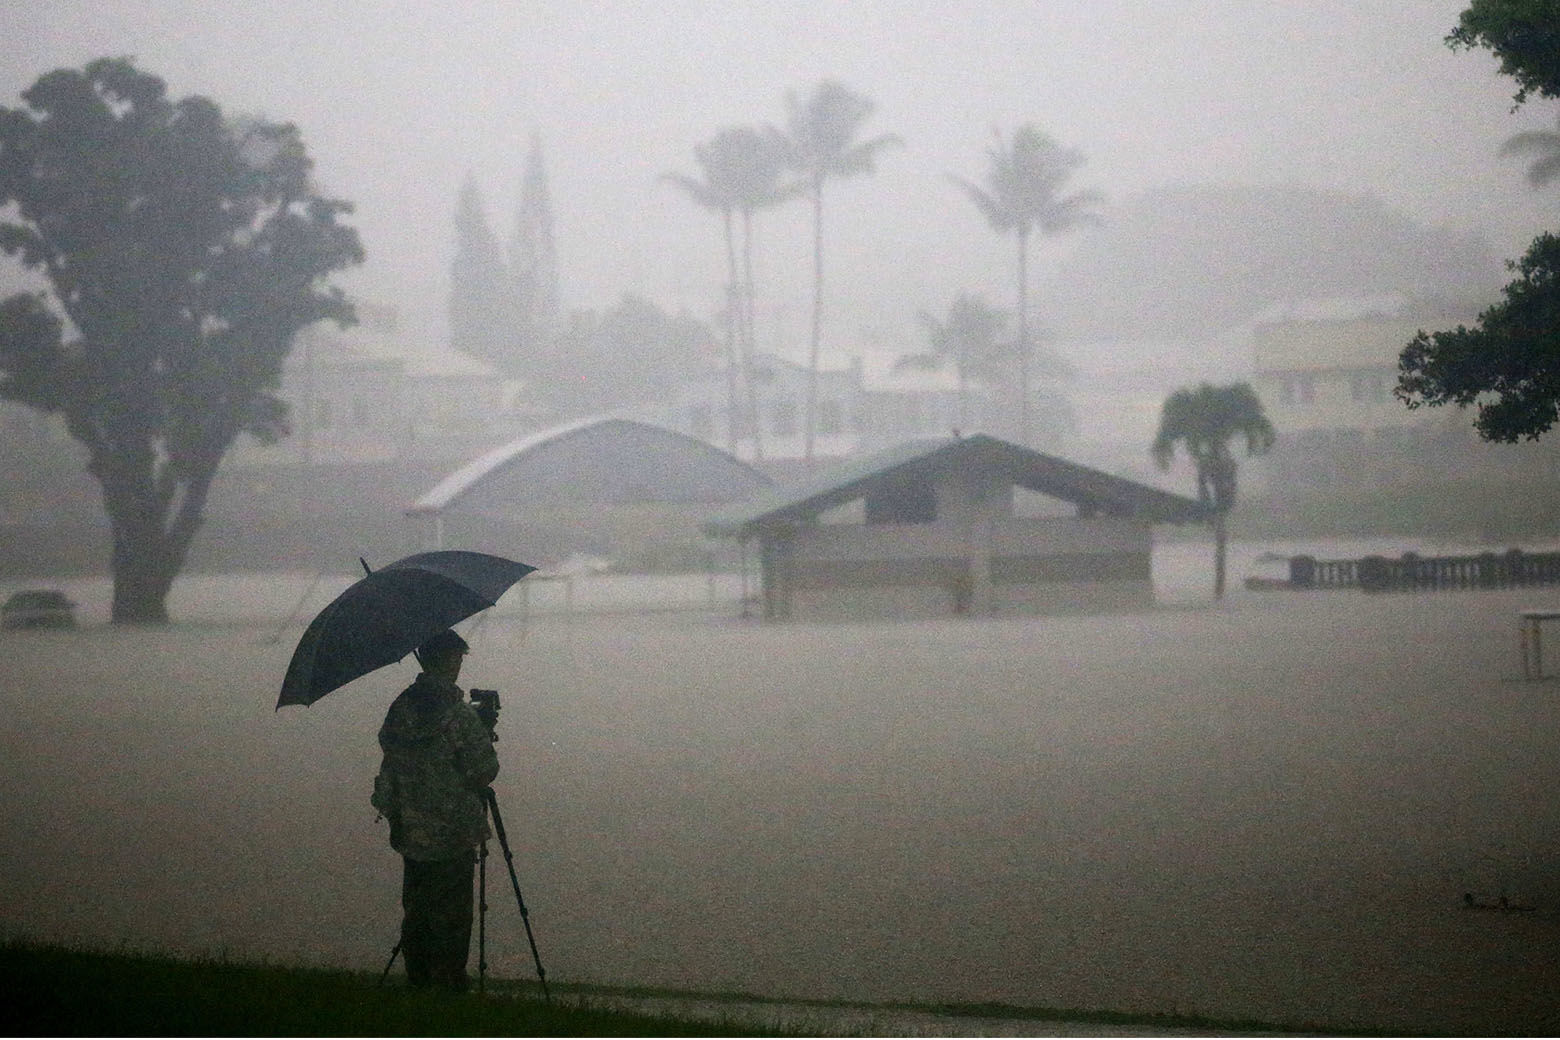 HILO, HI - AUGUST 23:  A man takes photos of floodwaters from Hurricane Lane rainfall on the Big Island on August 23, 2018 in Hilo, Hawaii. Hurricane Lane has brought more than a foot of rain to some parts of the Big Island which is under a flash flood warning.  (Photo by Mario Tama/Getty Images)